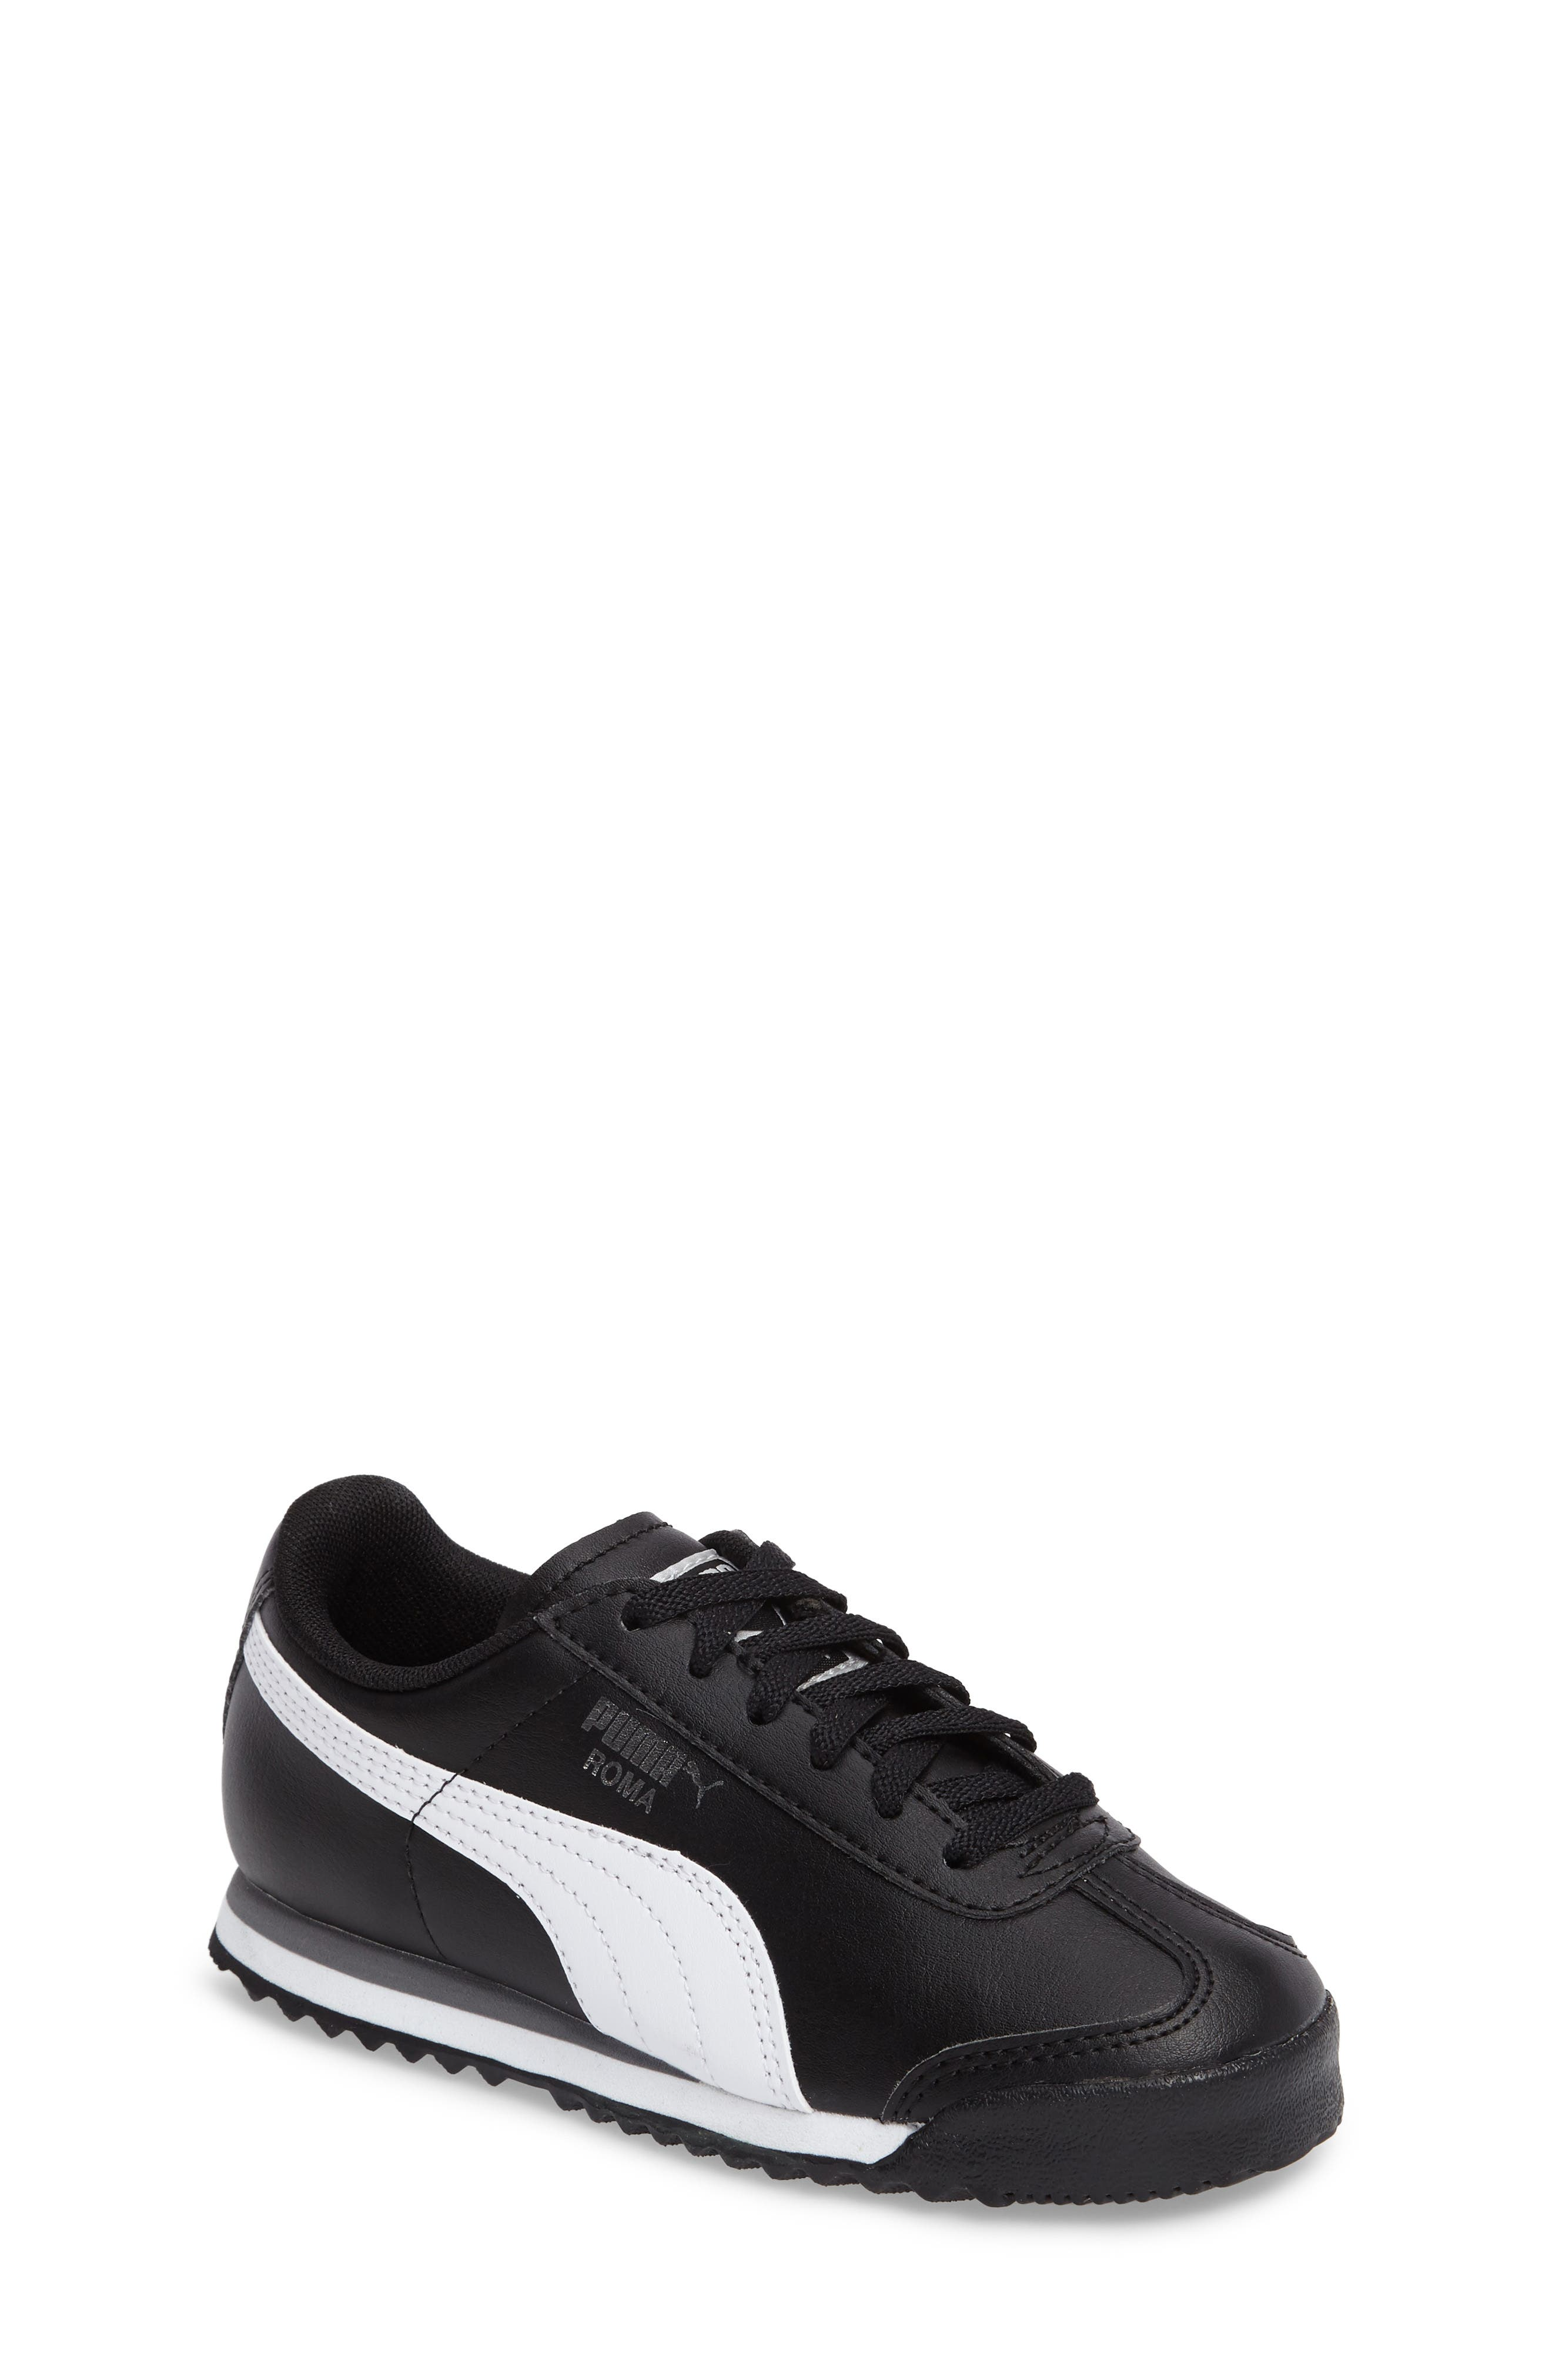 Roma Basic Sneaker,                             Main thumbnail 1, color,                             001